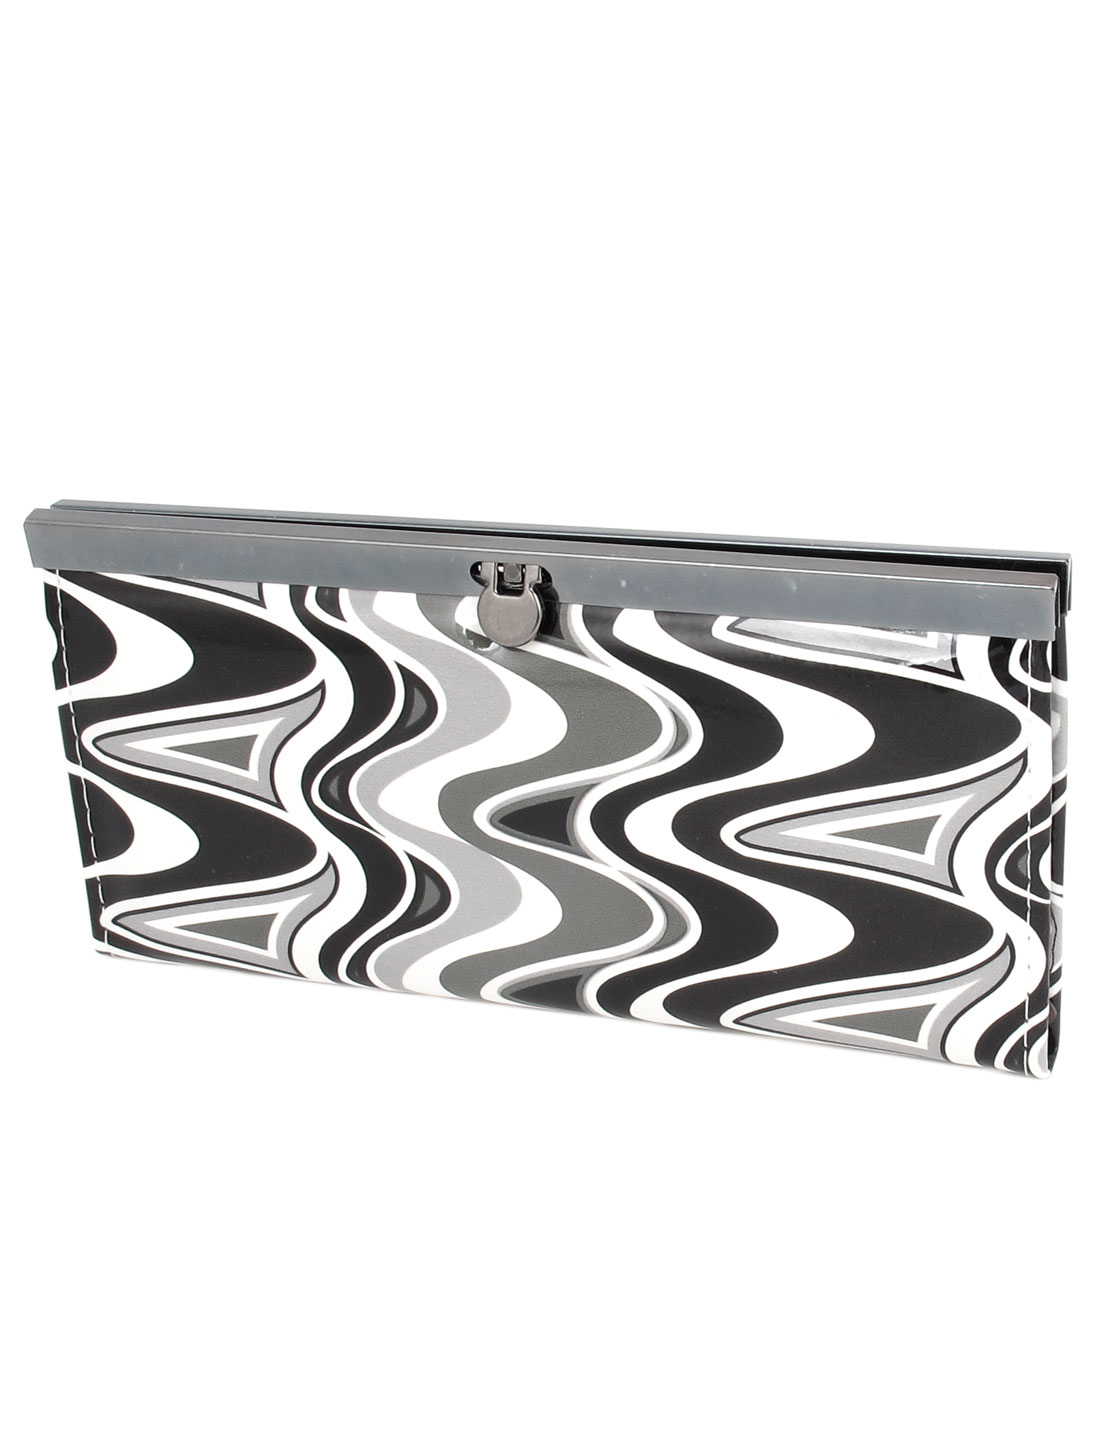 Wave Printed Faux Leather Purse Wallet Money Coin Bag Black White for Women